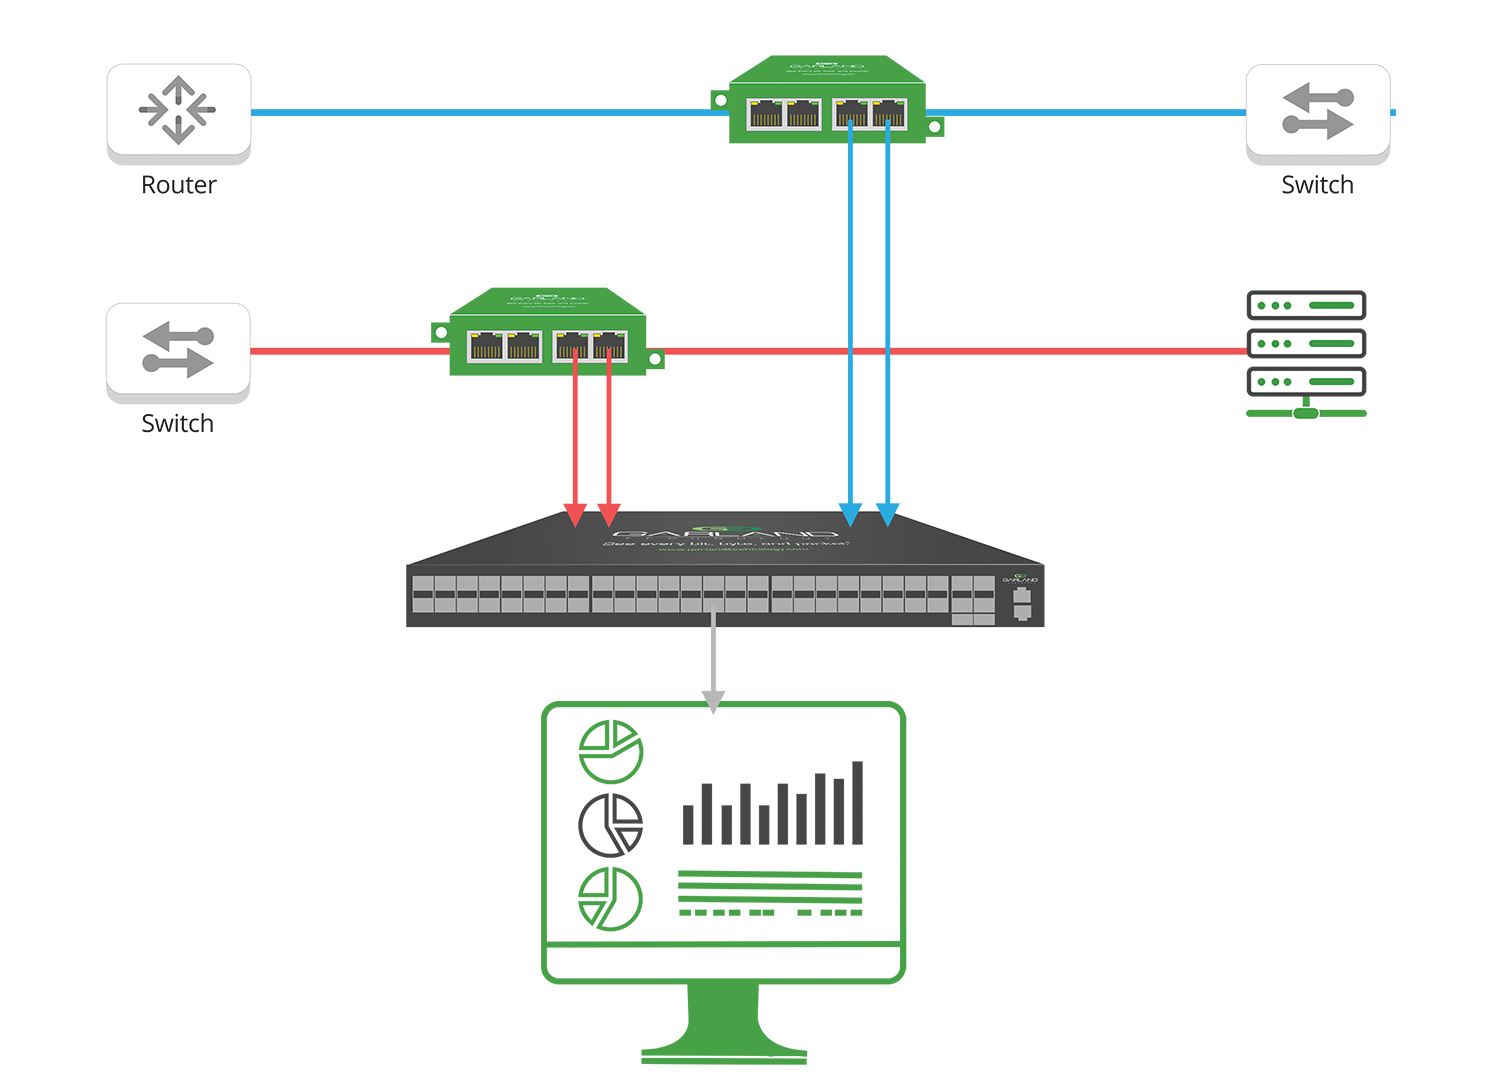 NetworkMonitoring-TAP-Agg20-LR3